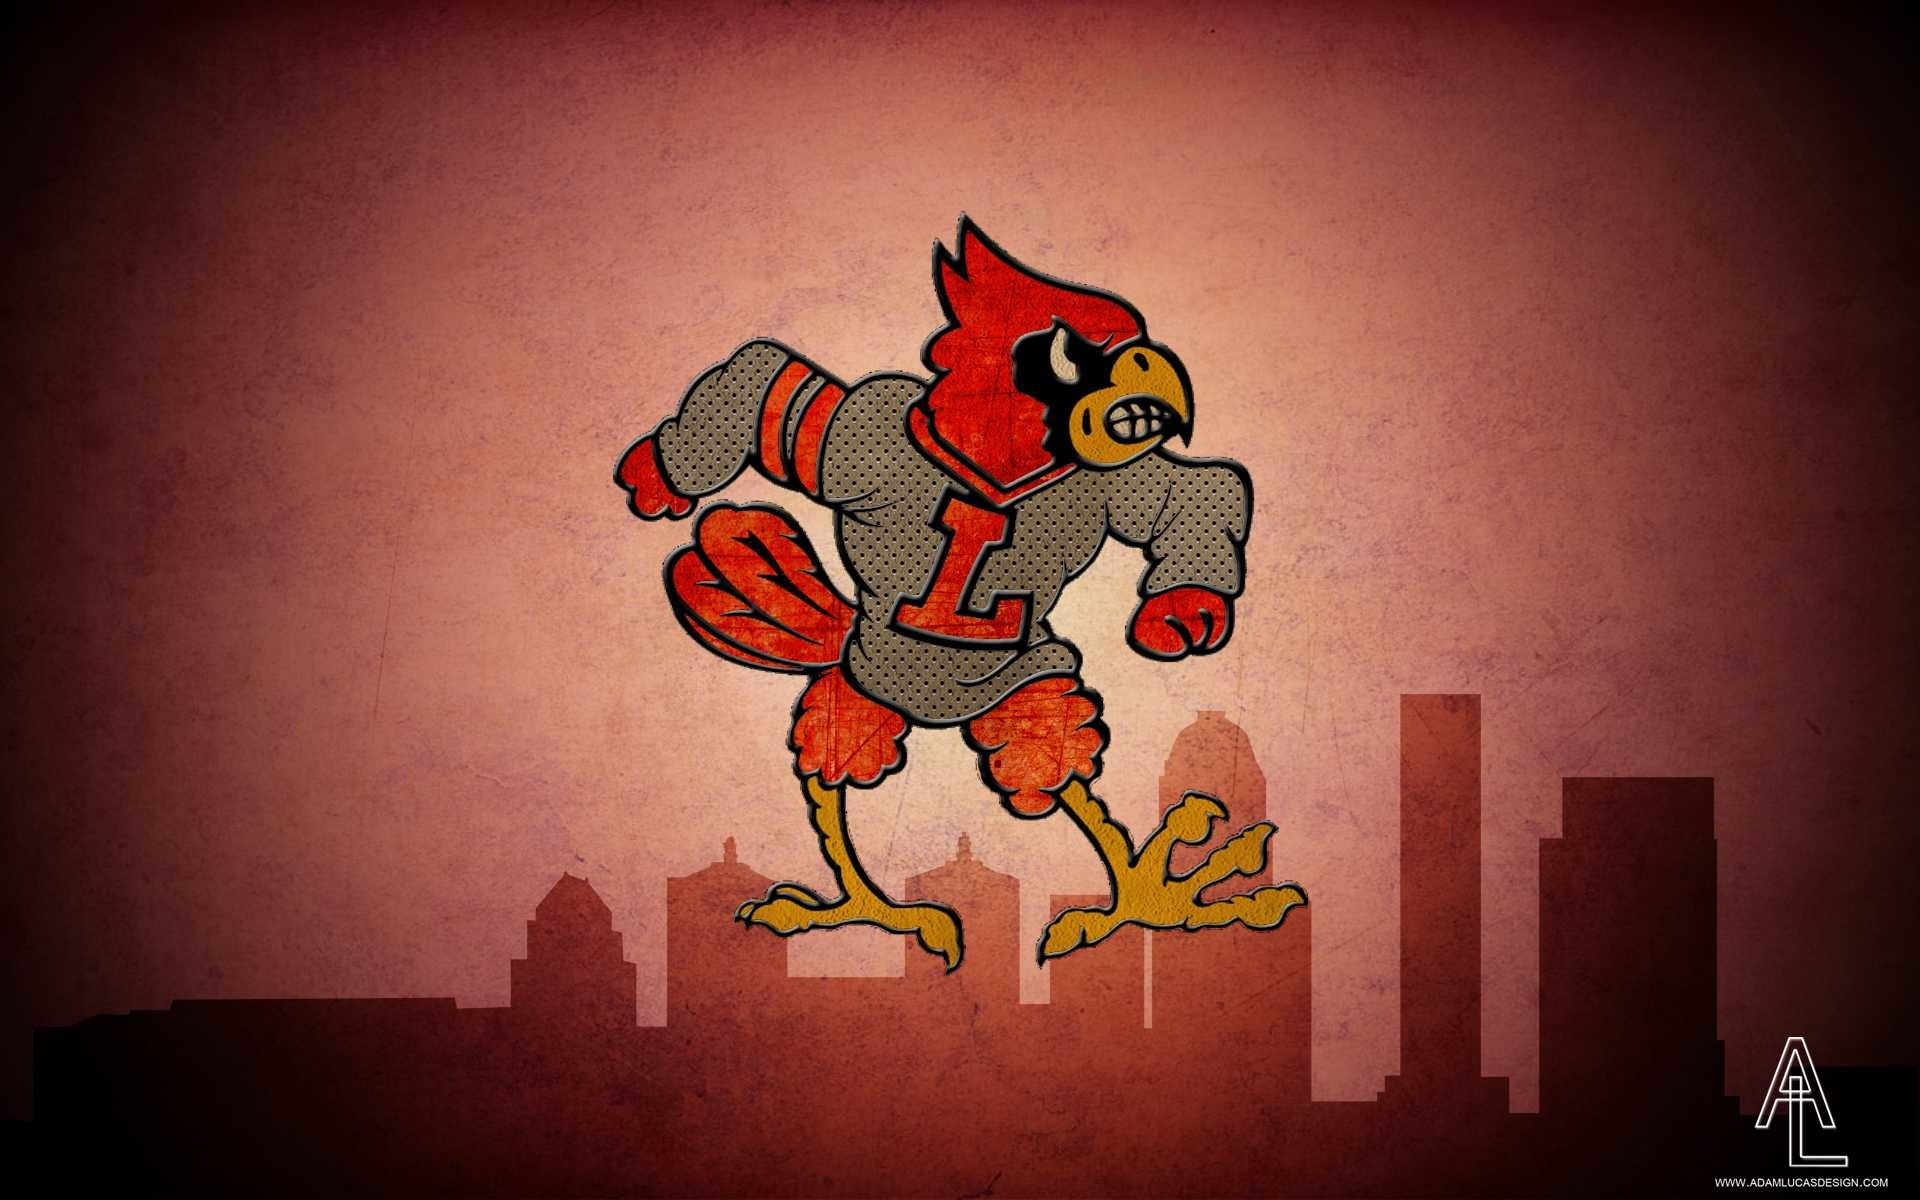 Res: 1920x1200, Louisville Cardinals Wallpaper High Quality 4k Hd Adam Lucas Designs Page  For Mobile